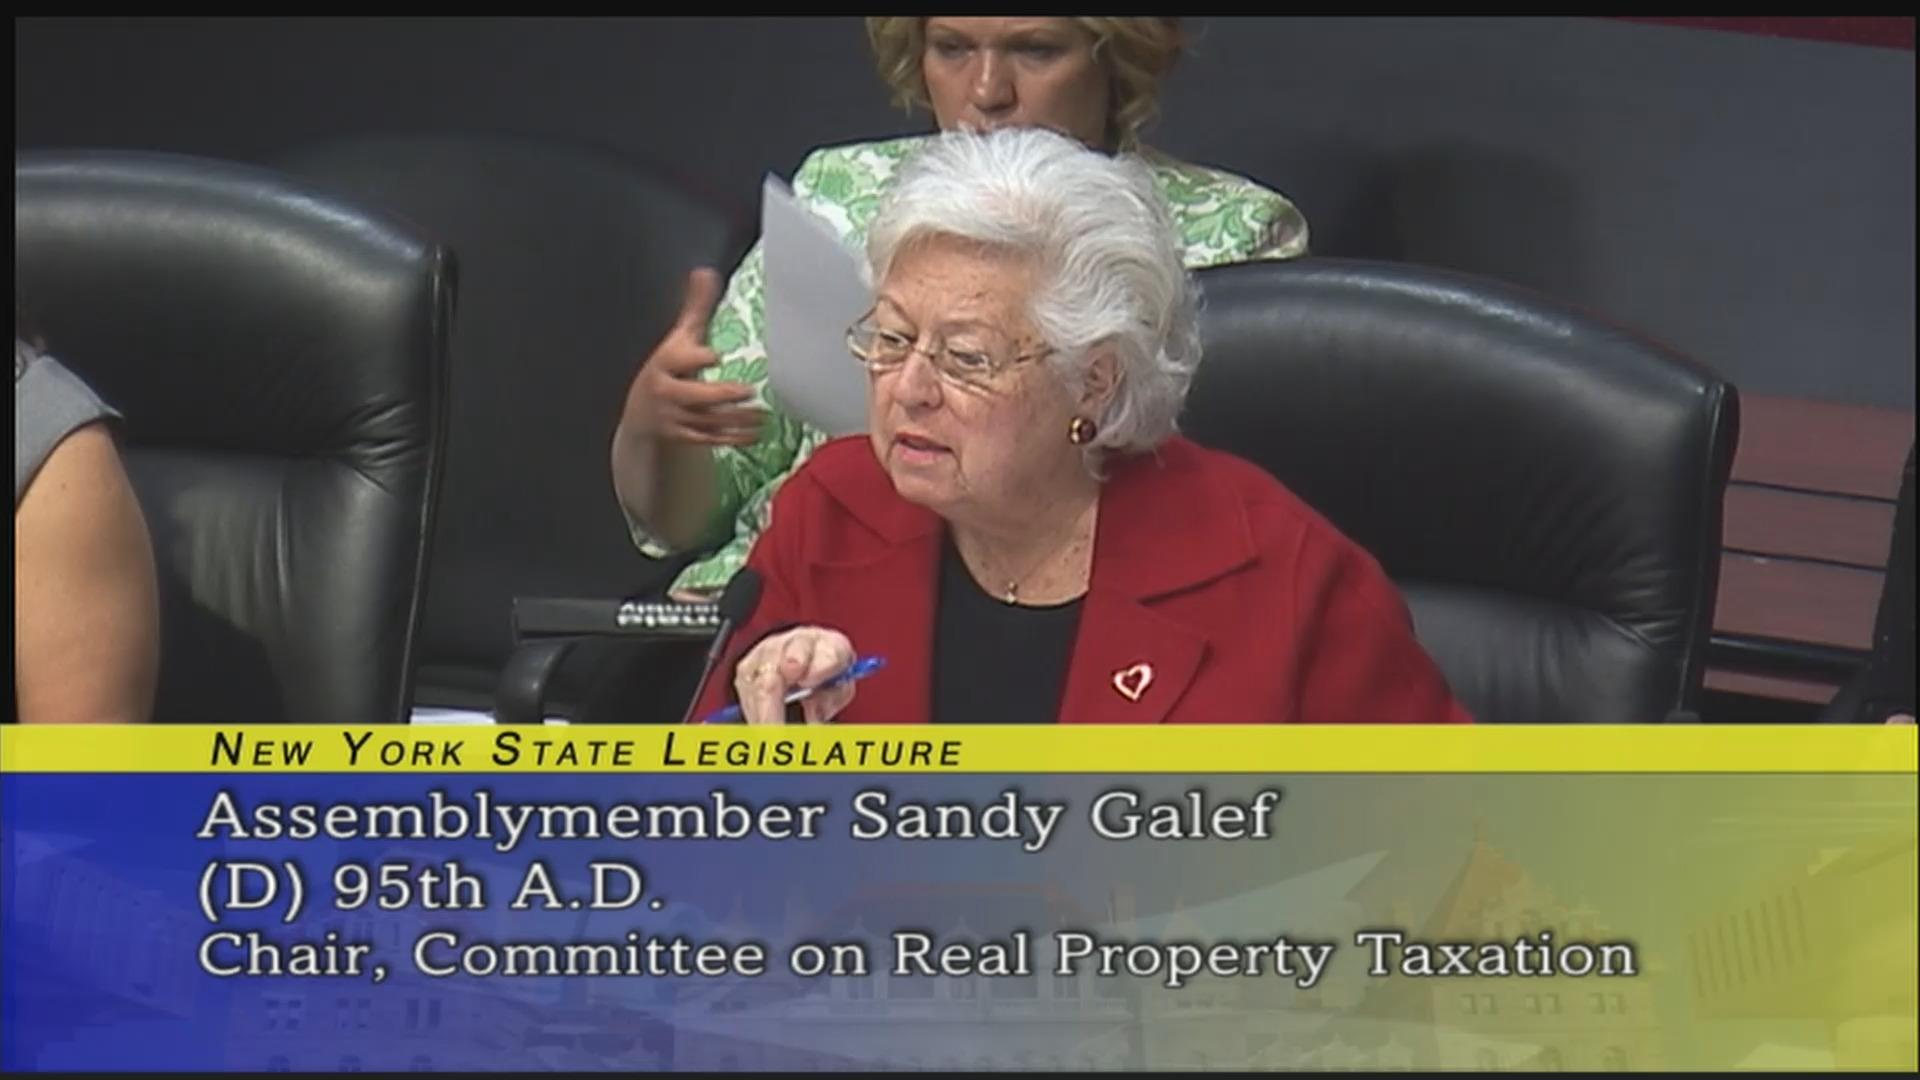 Galef Notes a Paid Interest of 2% of Property Taxes